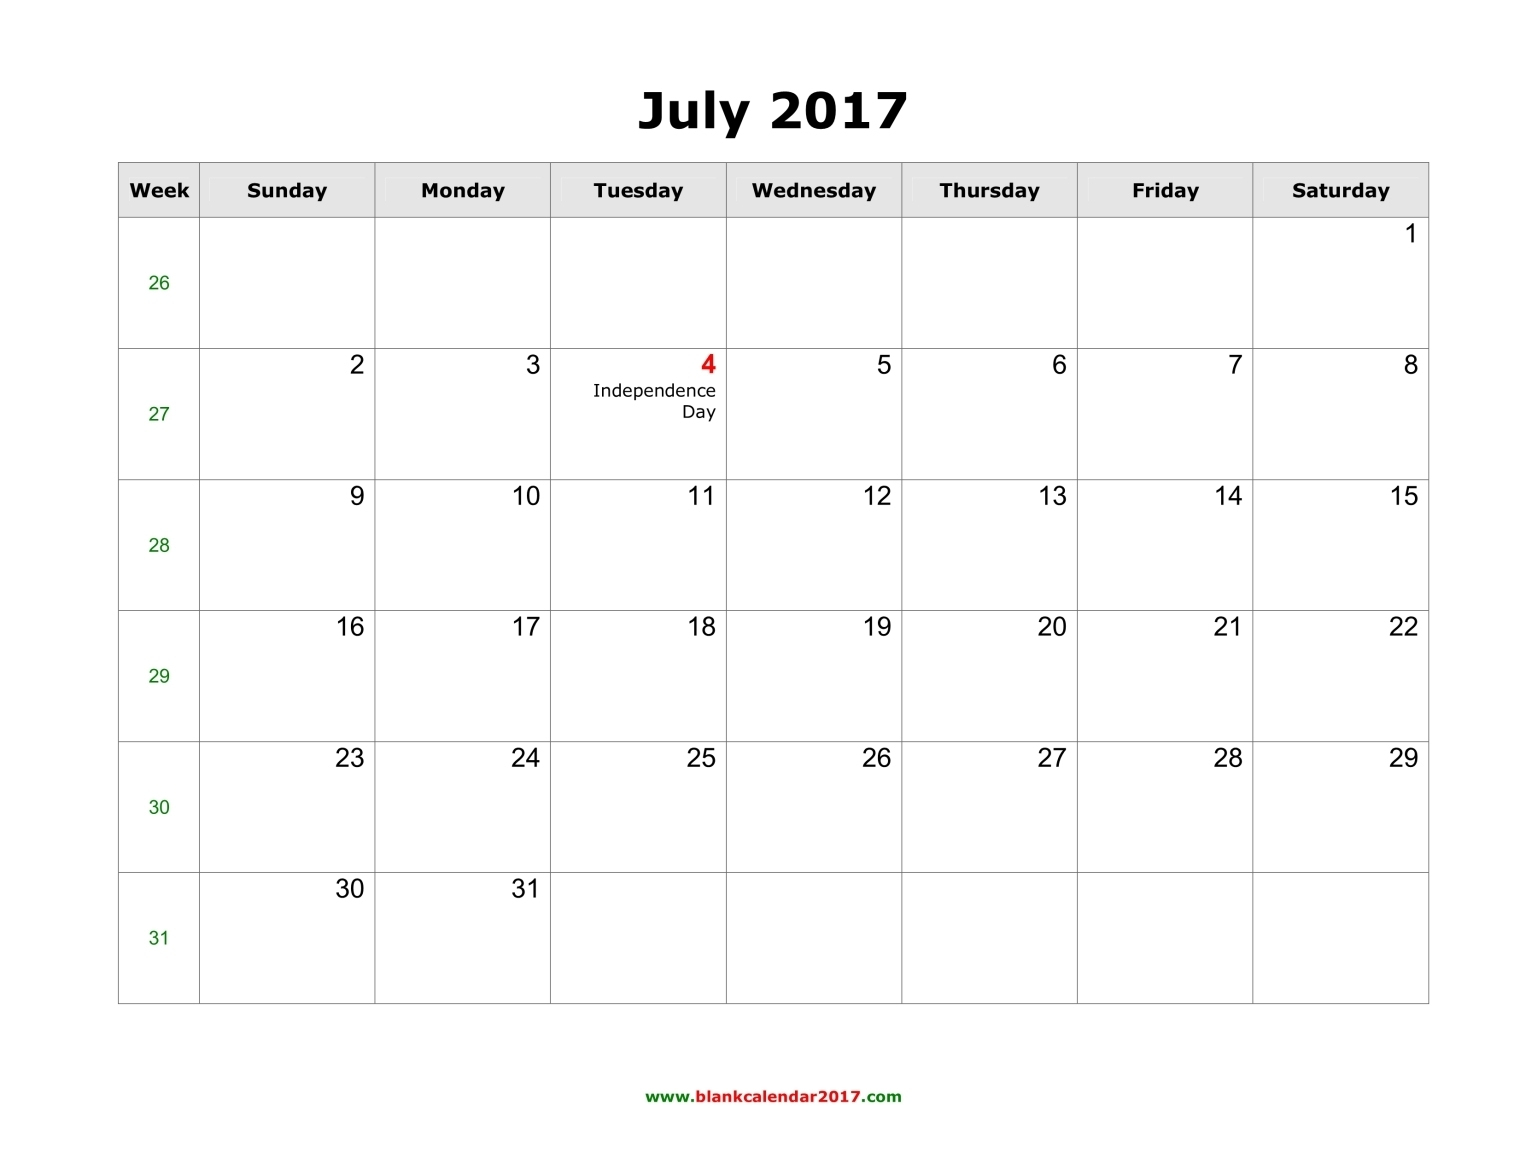 July 2017 Calendar With Holidays Uk | weekly calendar template